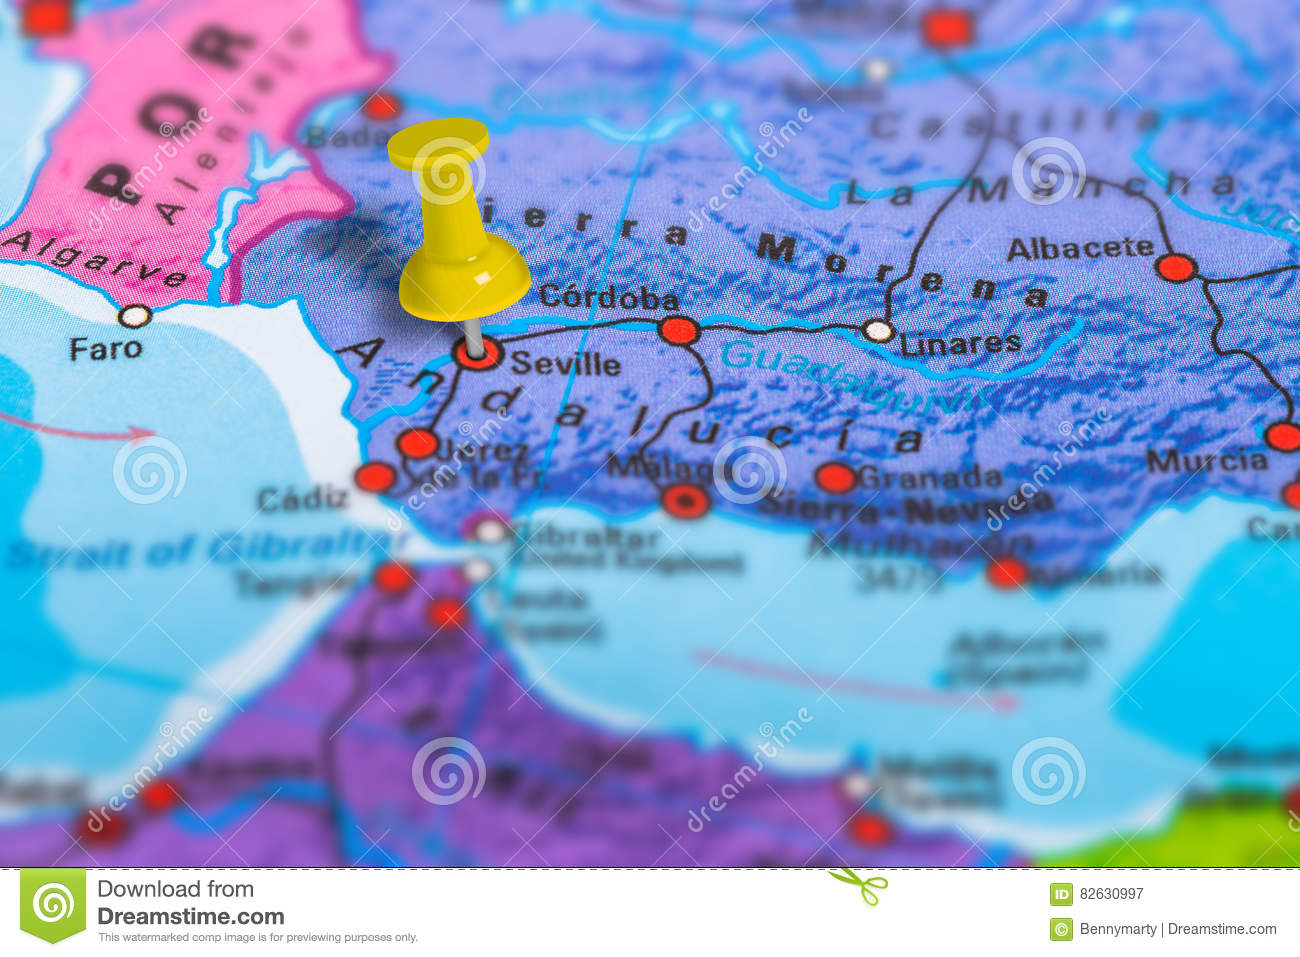 Seville Spain map stock image. Image of color, guidance - 82630997